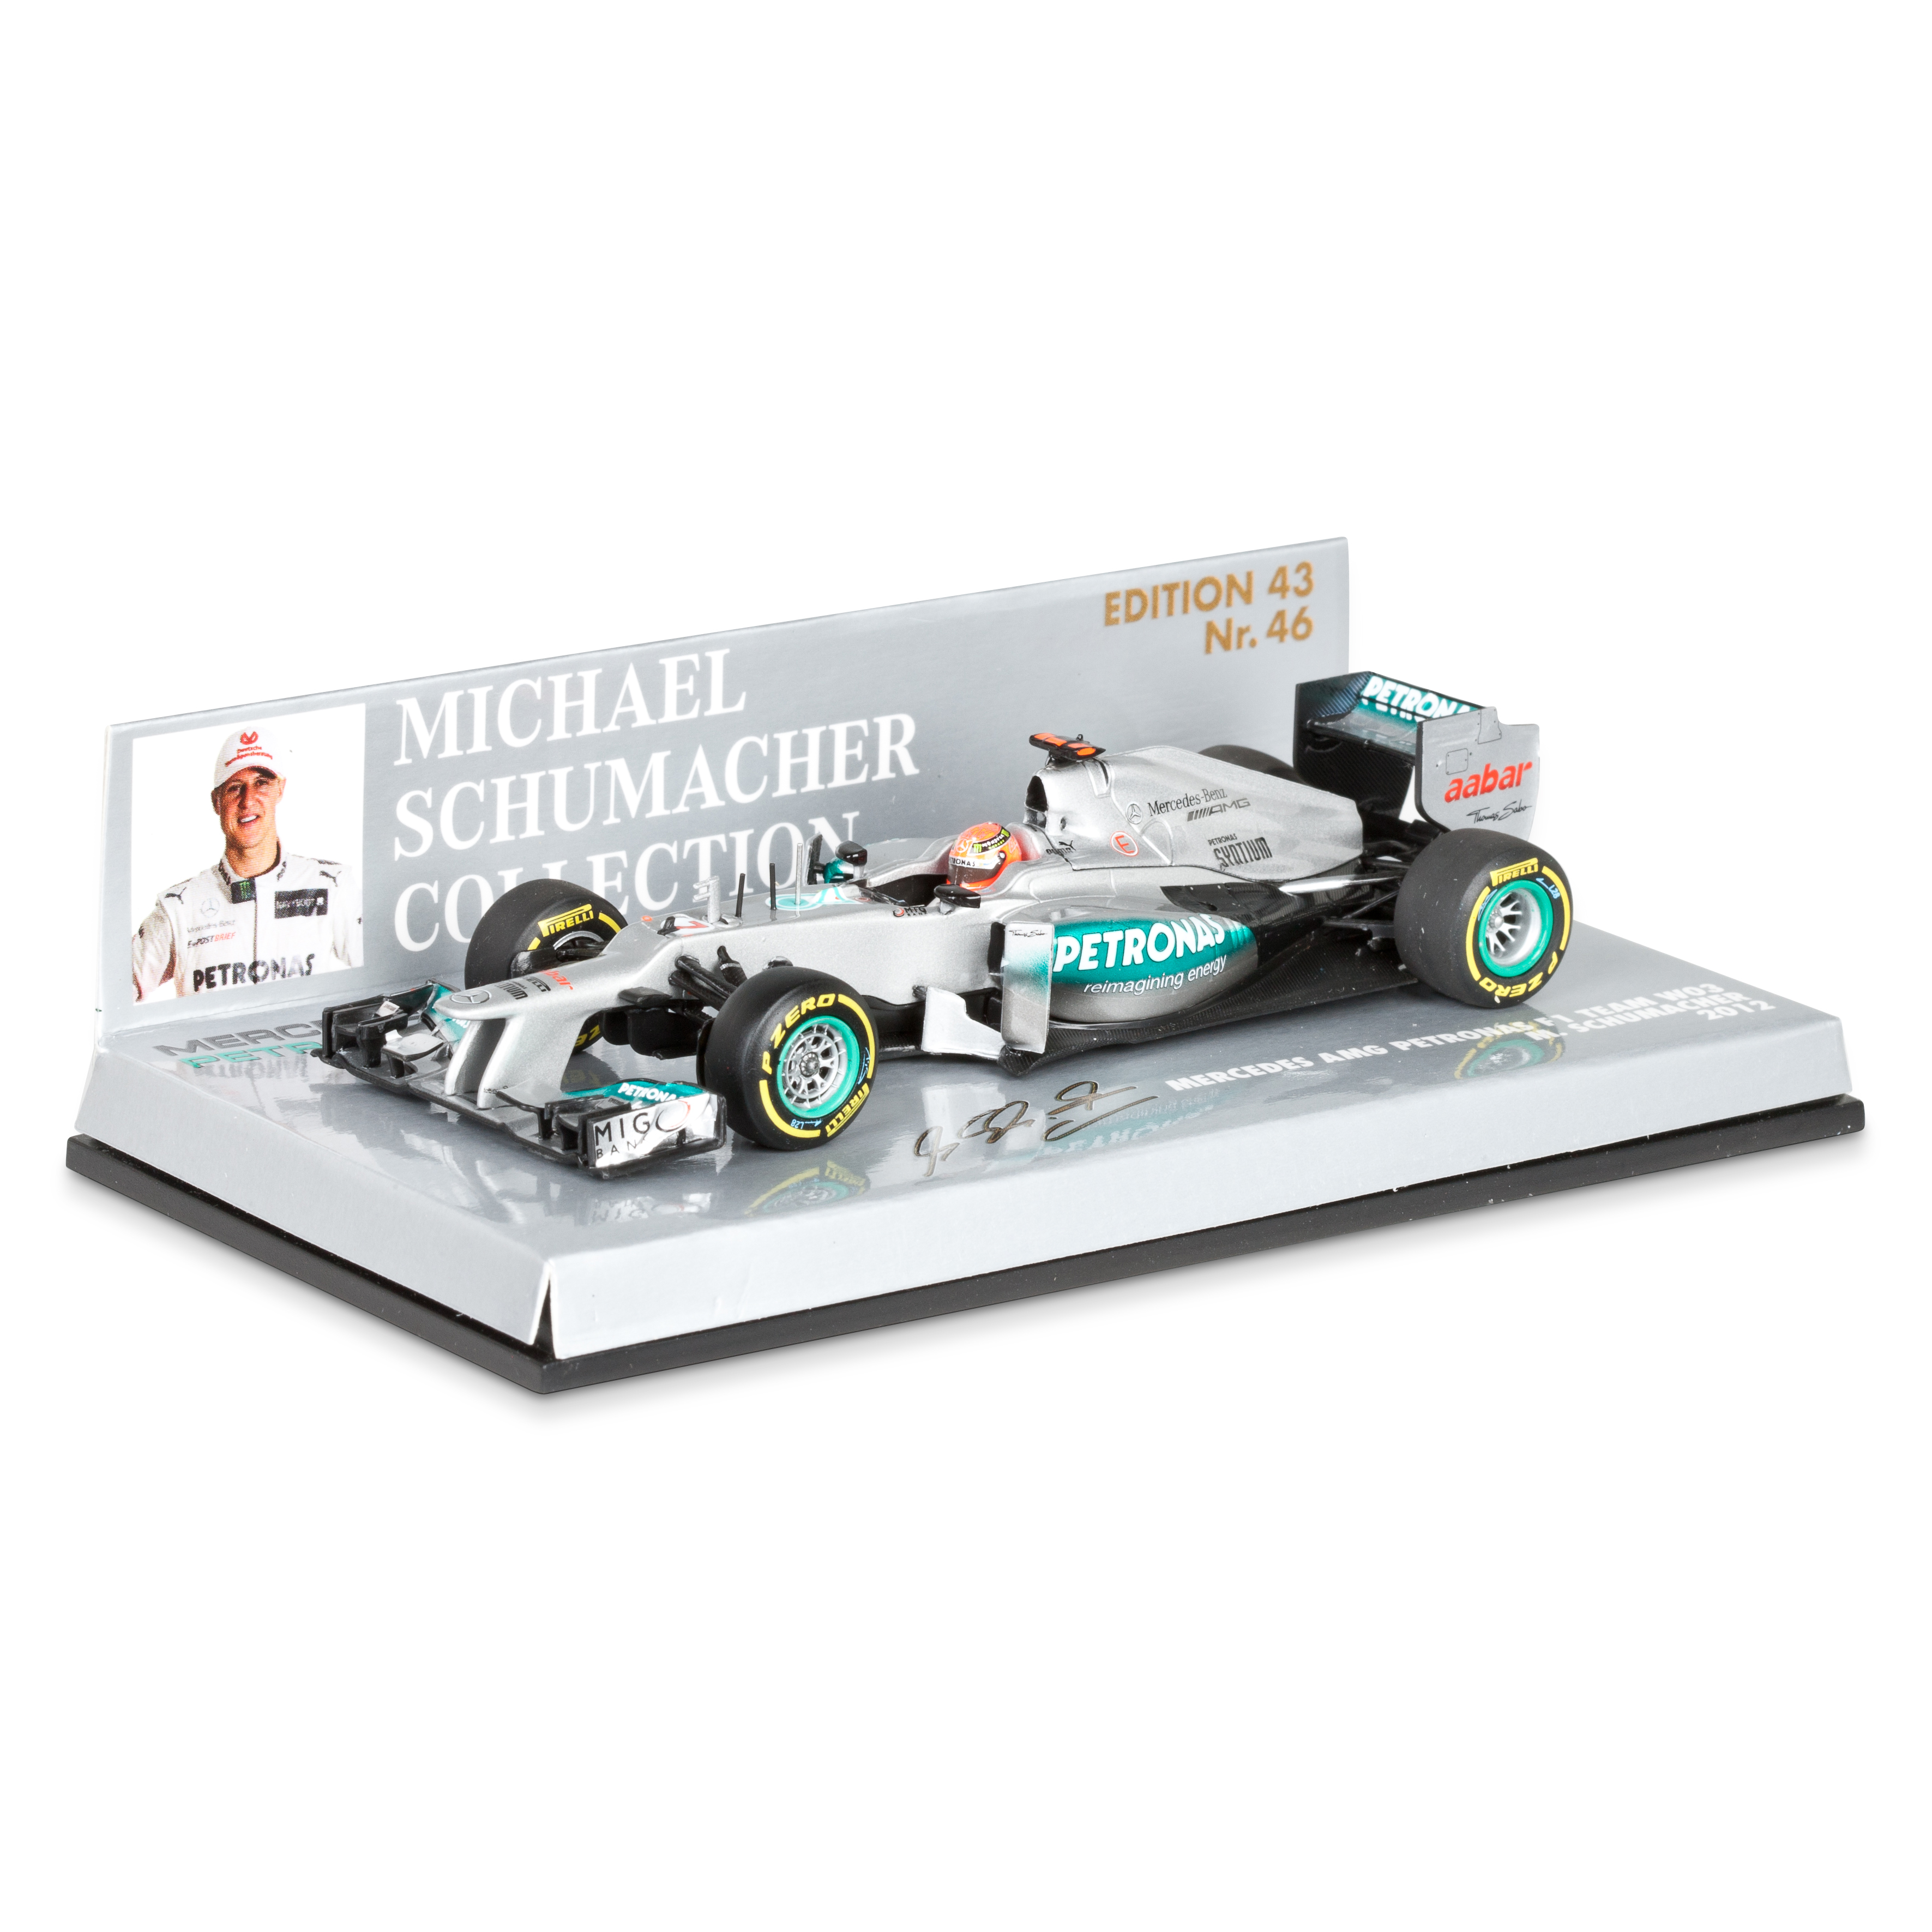 Mercedes AMG Petronas F1 Team W03 2012 Michael Schumacher 1:43 Scale